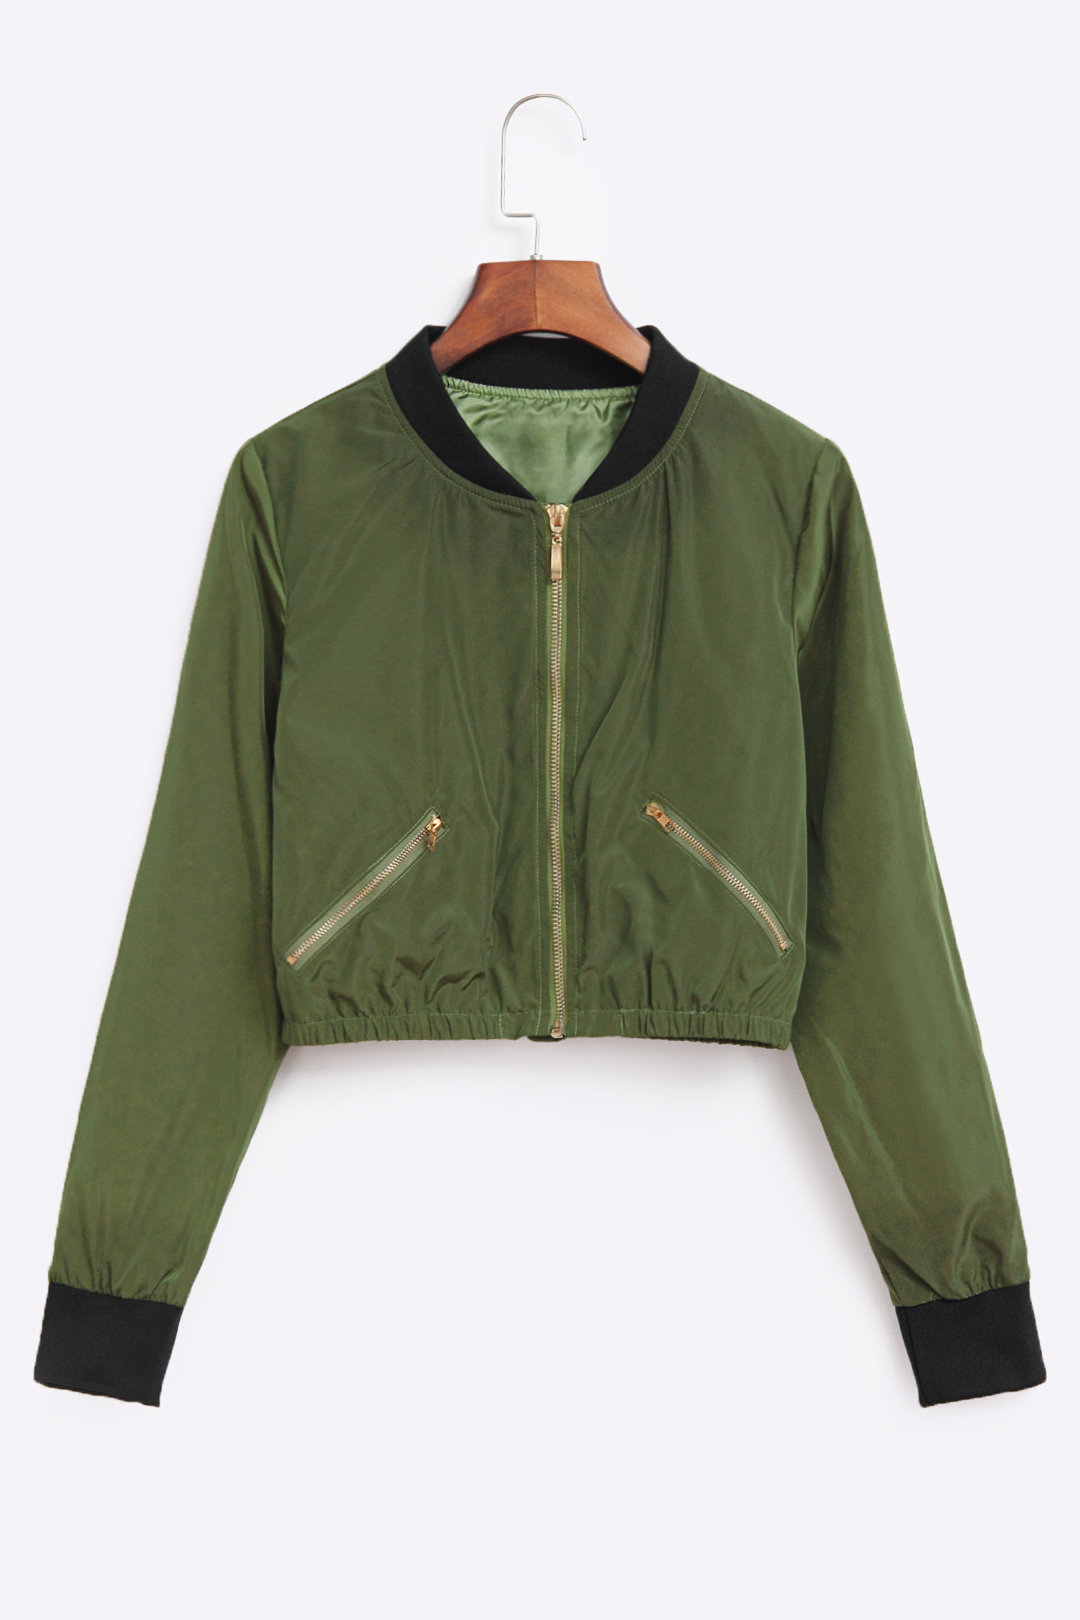 Army Green Chimney Collar Zipper Front Bomber Jacket With Side Zippers